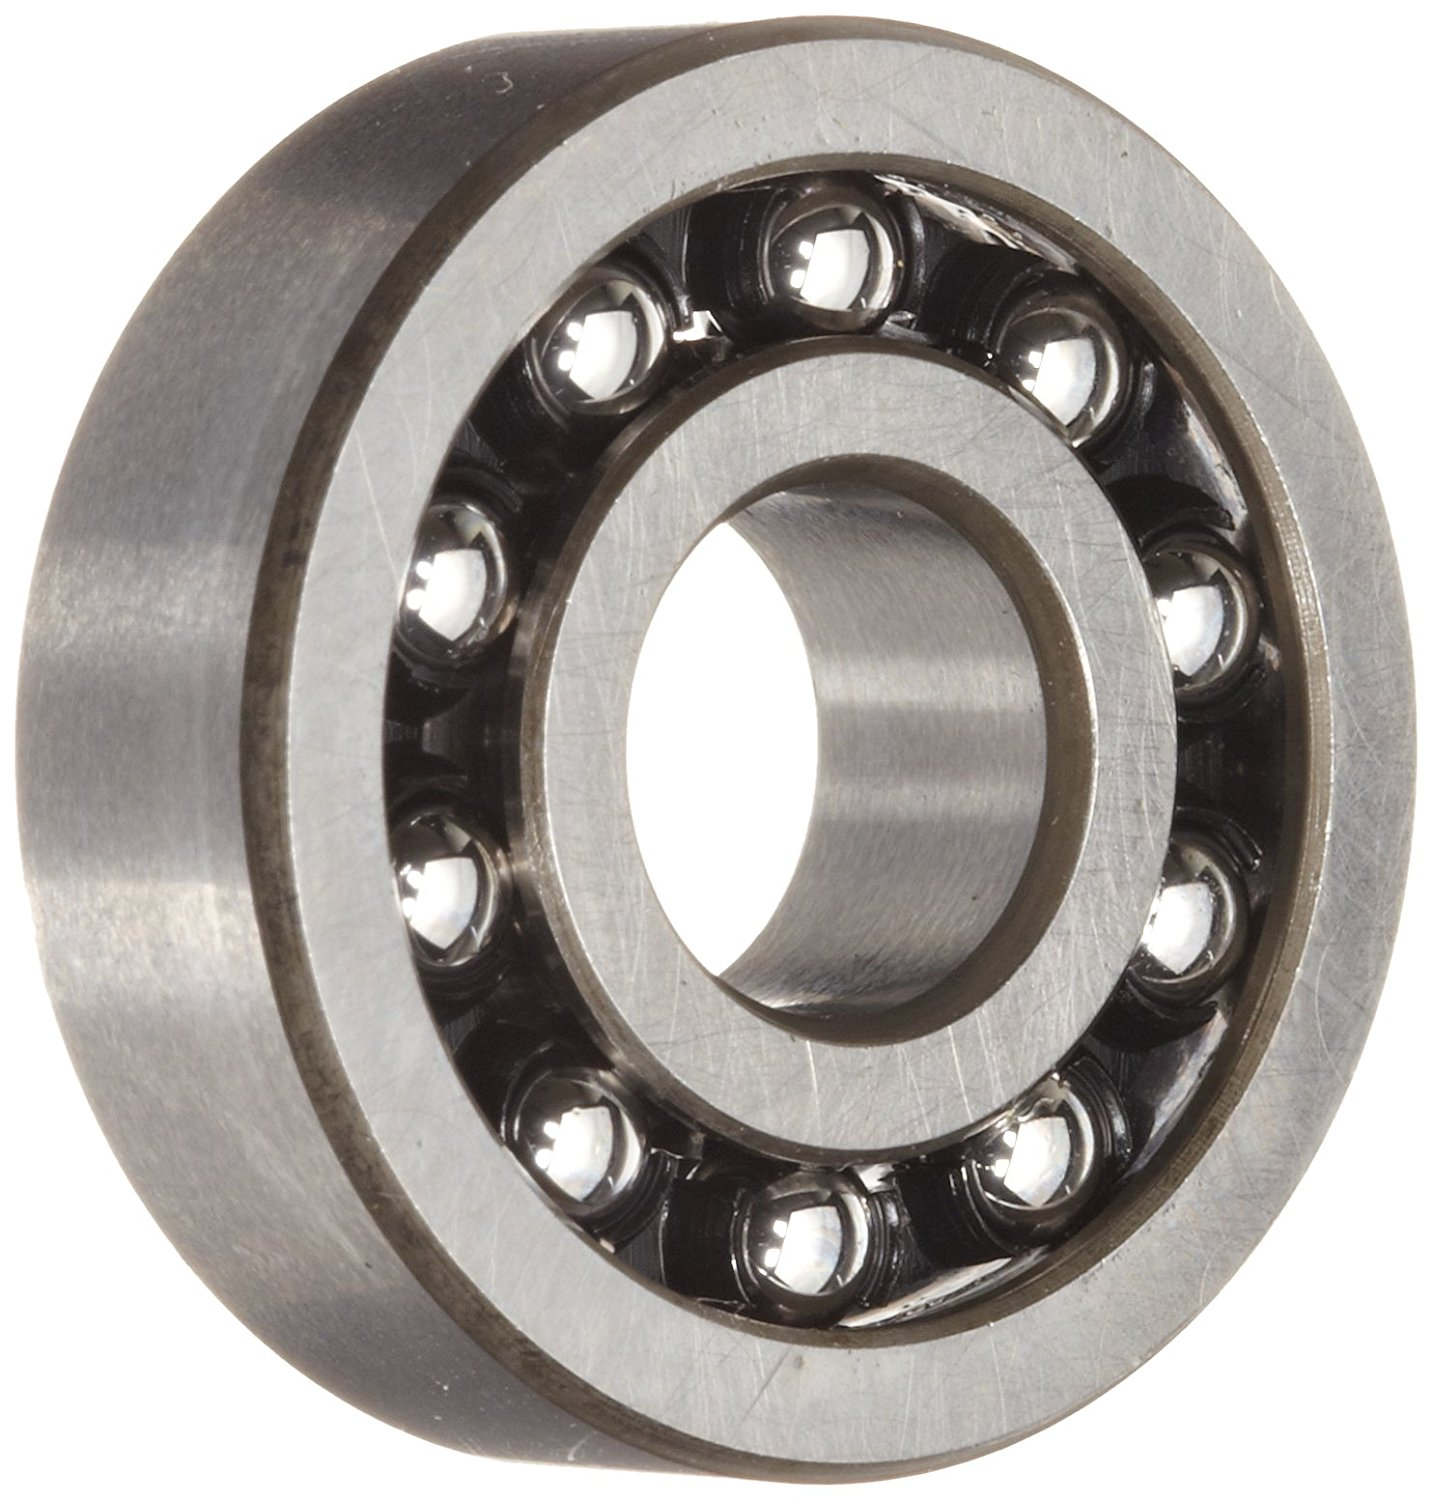 FAG 1206.TV Double Row Self-Aligning Ball Bearings (Inside Dia 30 mm,Outside Dia 62 mm,Width 16 mm)